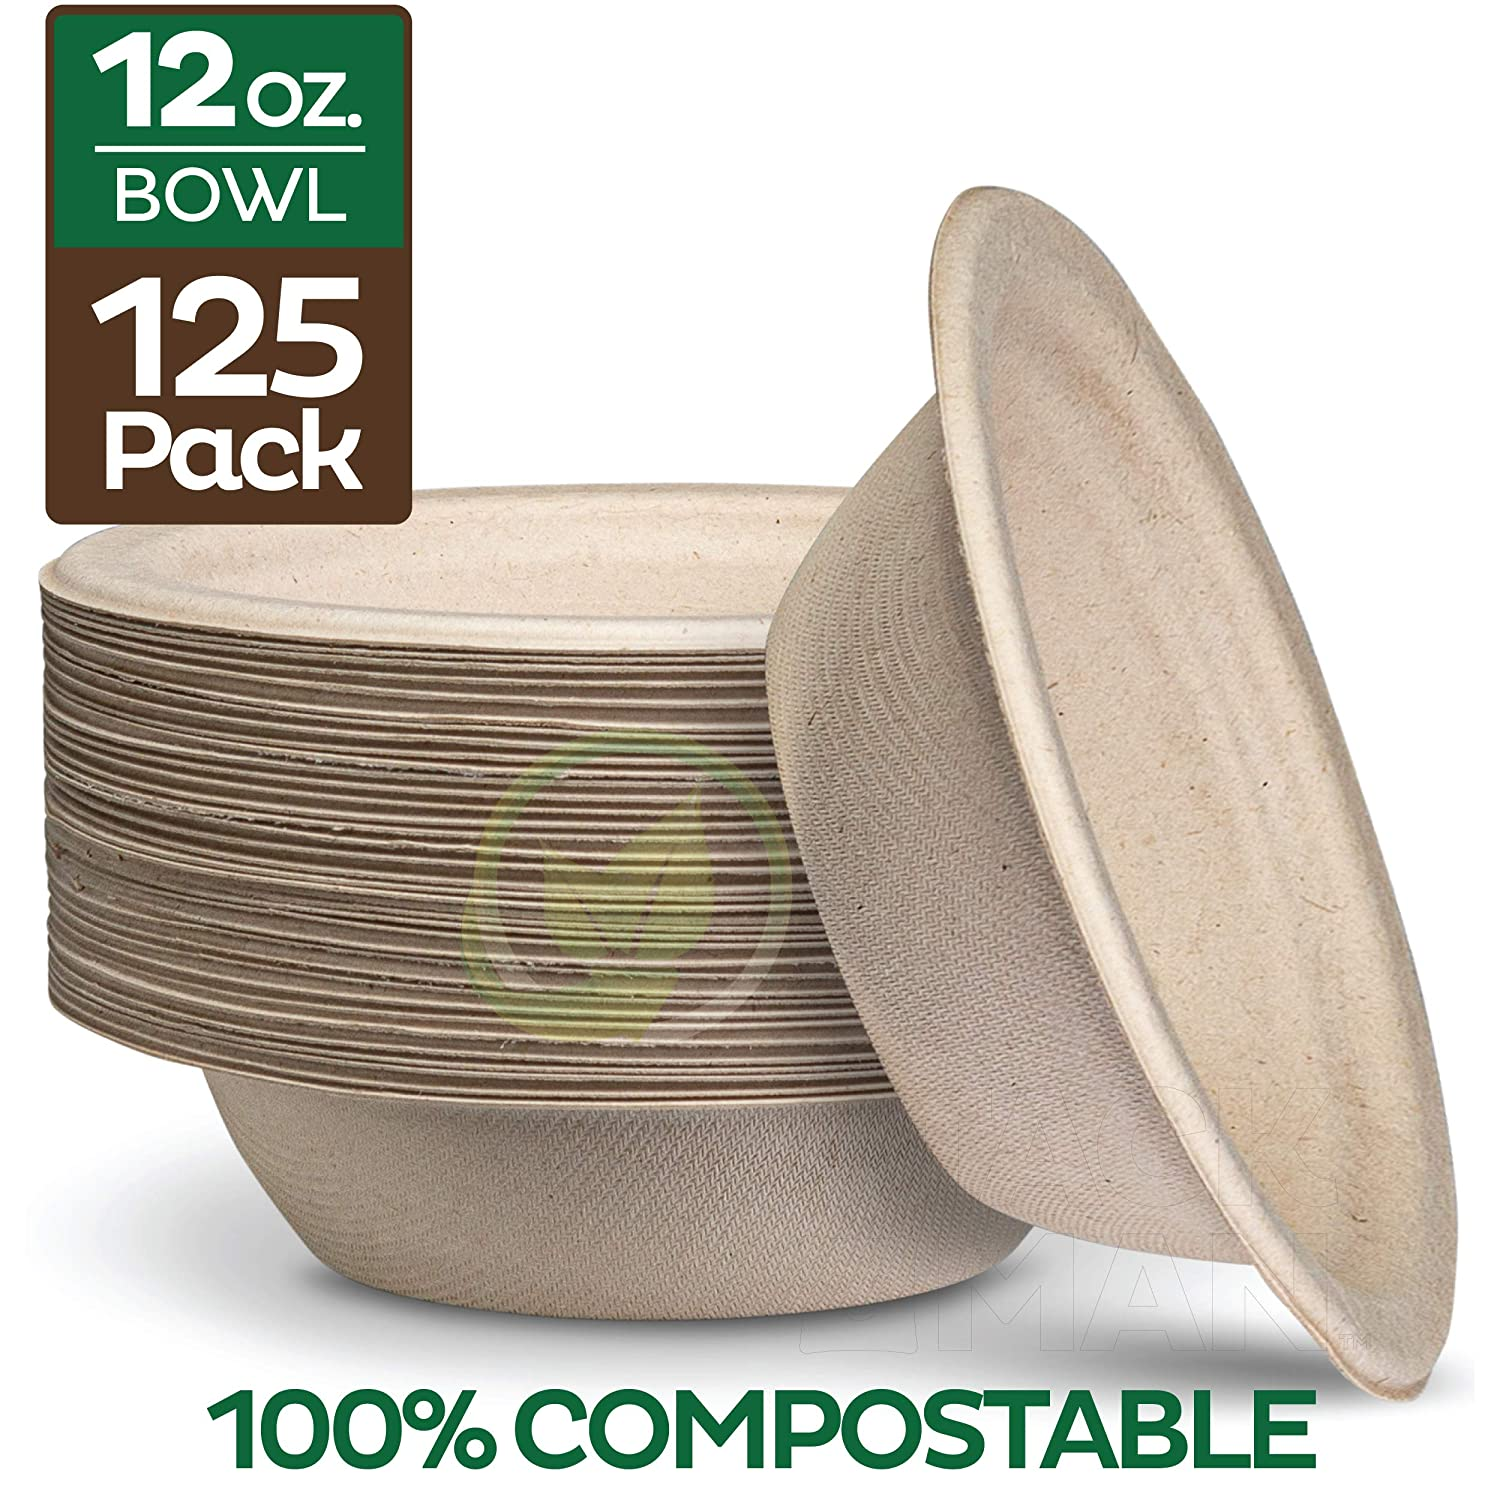 100% Compostable 12 oz. Paper Bowls [125-Pack] Heavy-Duty Quality Natural Disposable Bagasse, Eco-Friendly Biodegradable Made of Sugar Cane Fibers 81iNIQ3wqKL